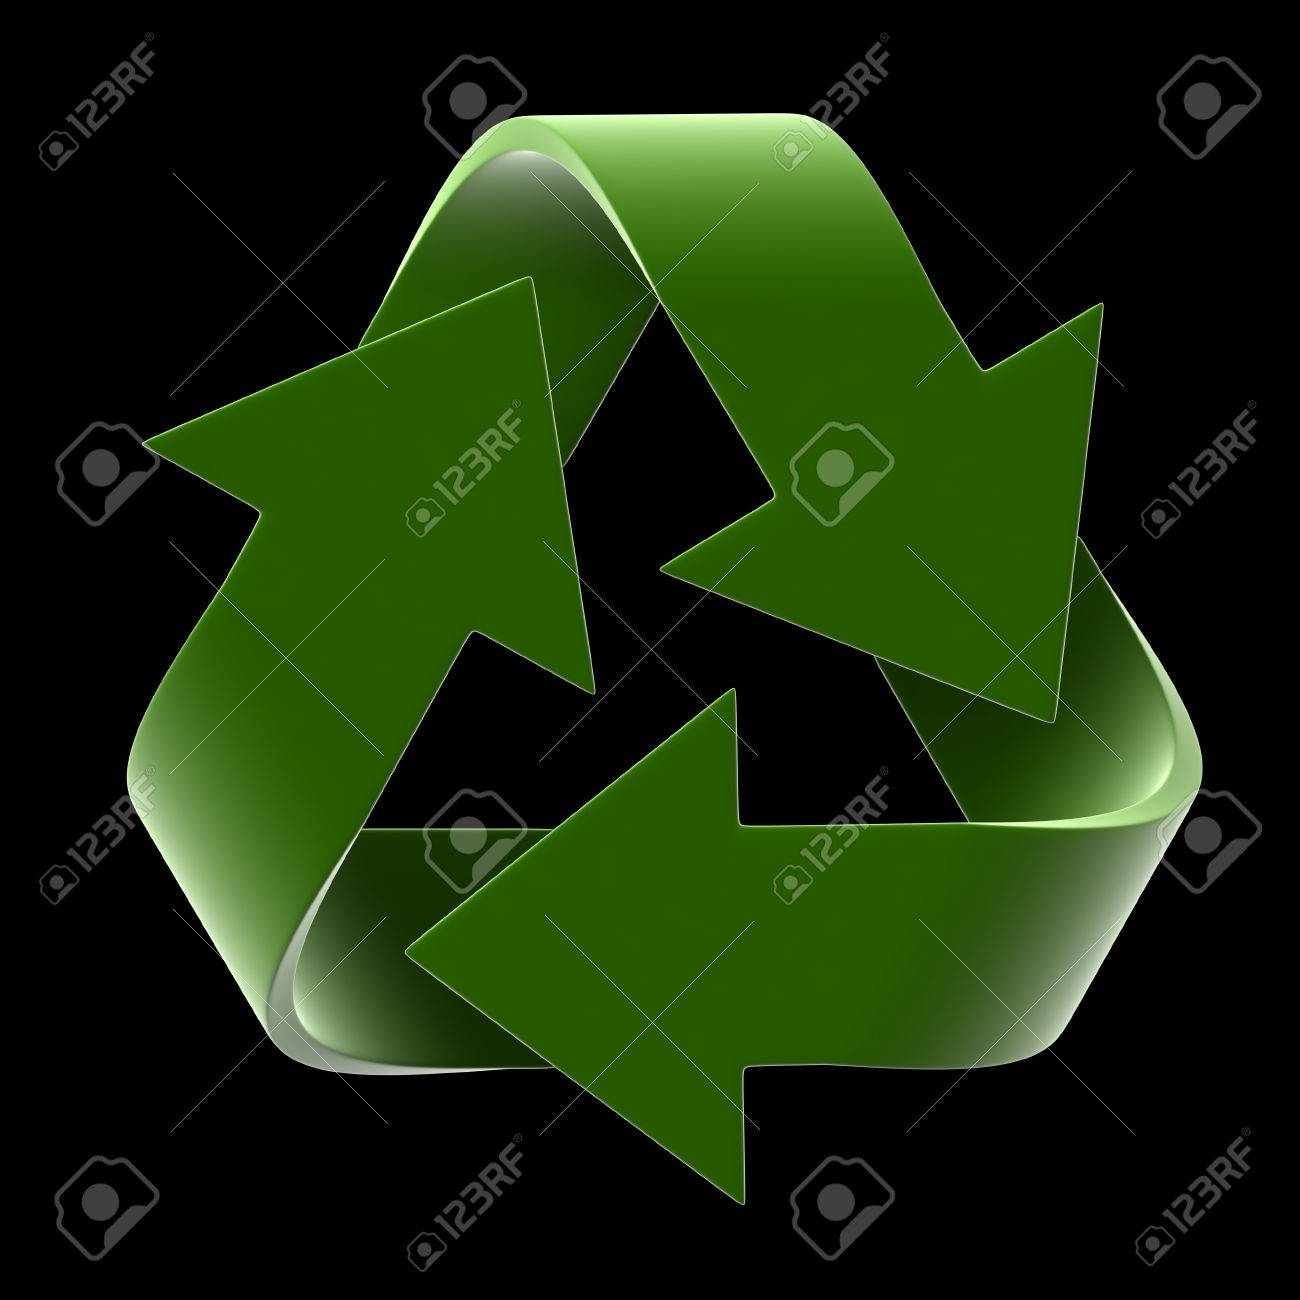 3d render of recycle symbol isolated on black background stock 3d render of recycle symbol isolated on black background stock photo 33886623 biocorpaavc Gallery